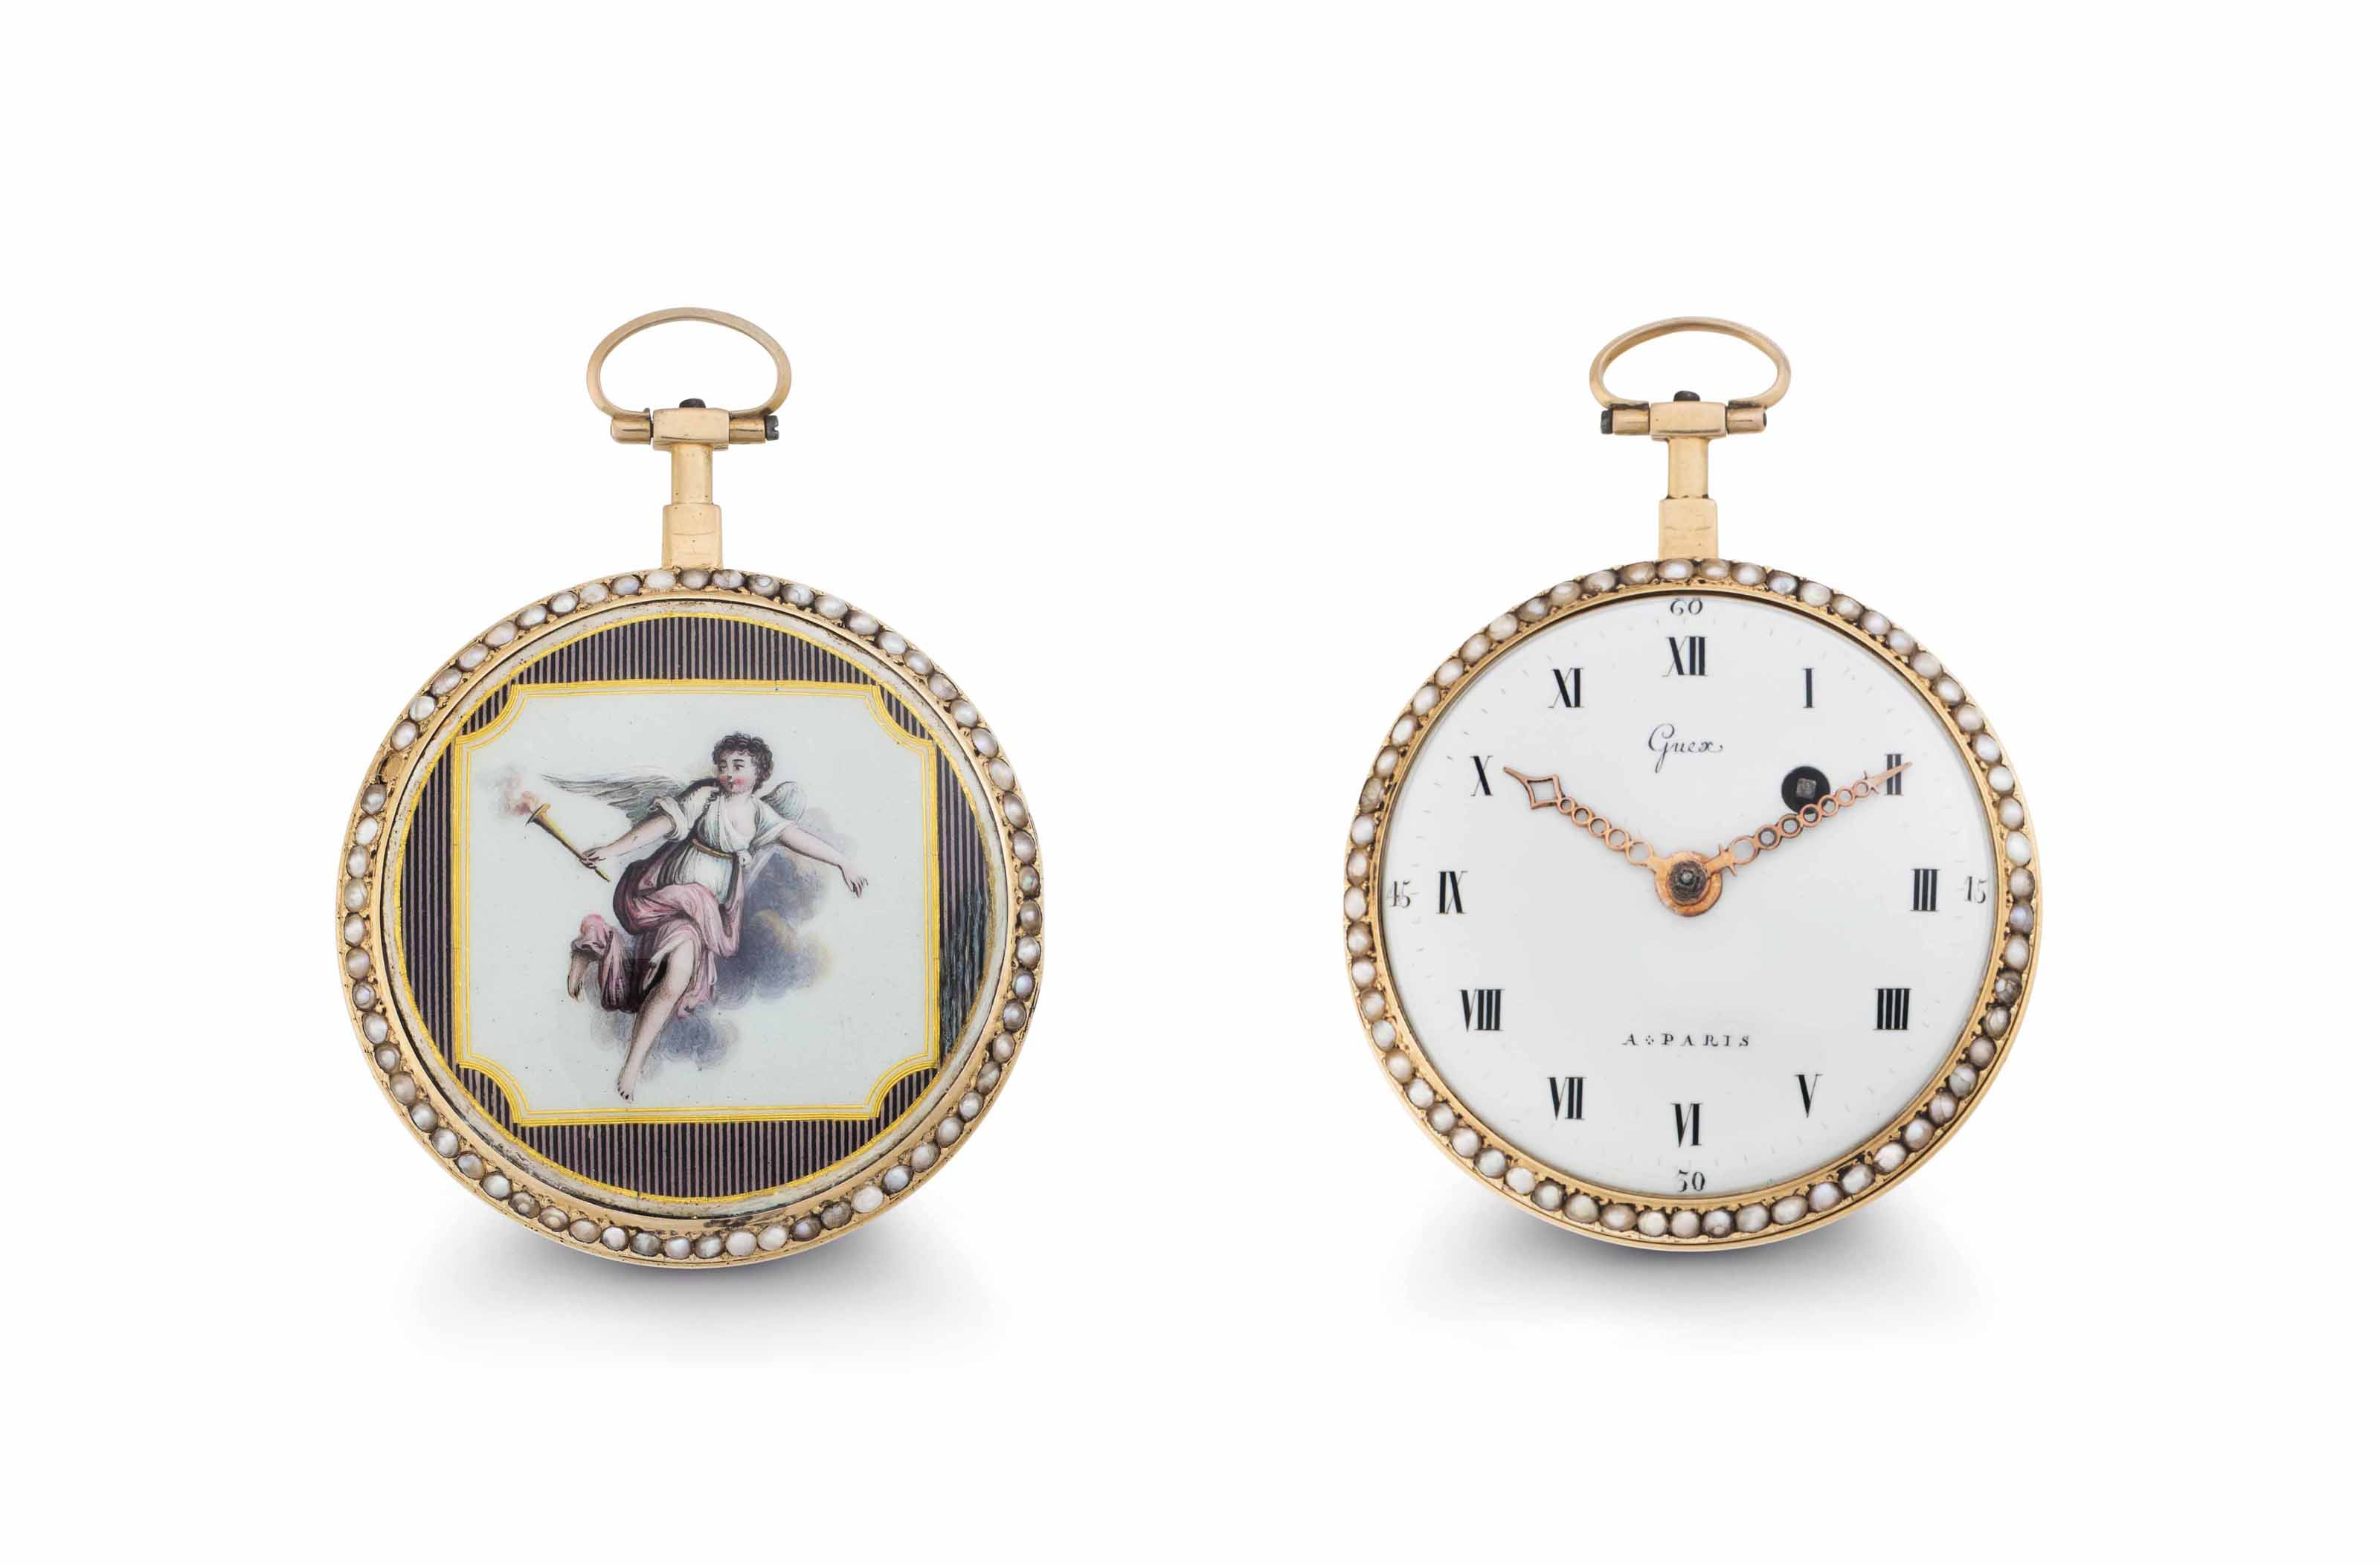 Guex. An 18k Pink Gold, Enamel and Pearl-set Openface Verge with Later Enamel Back